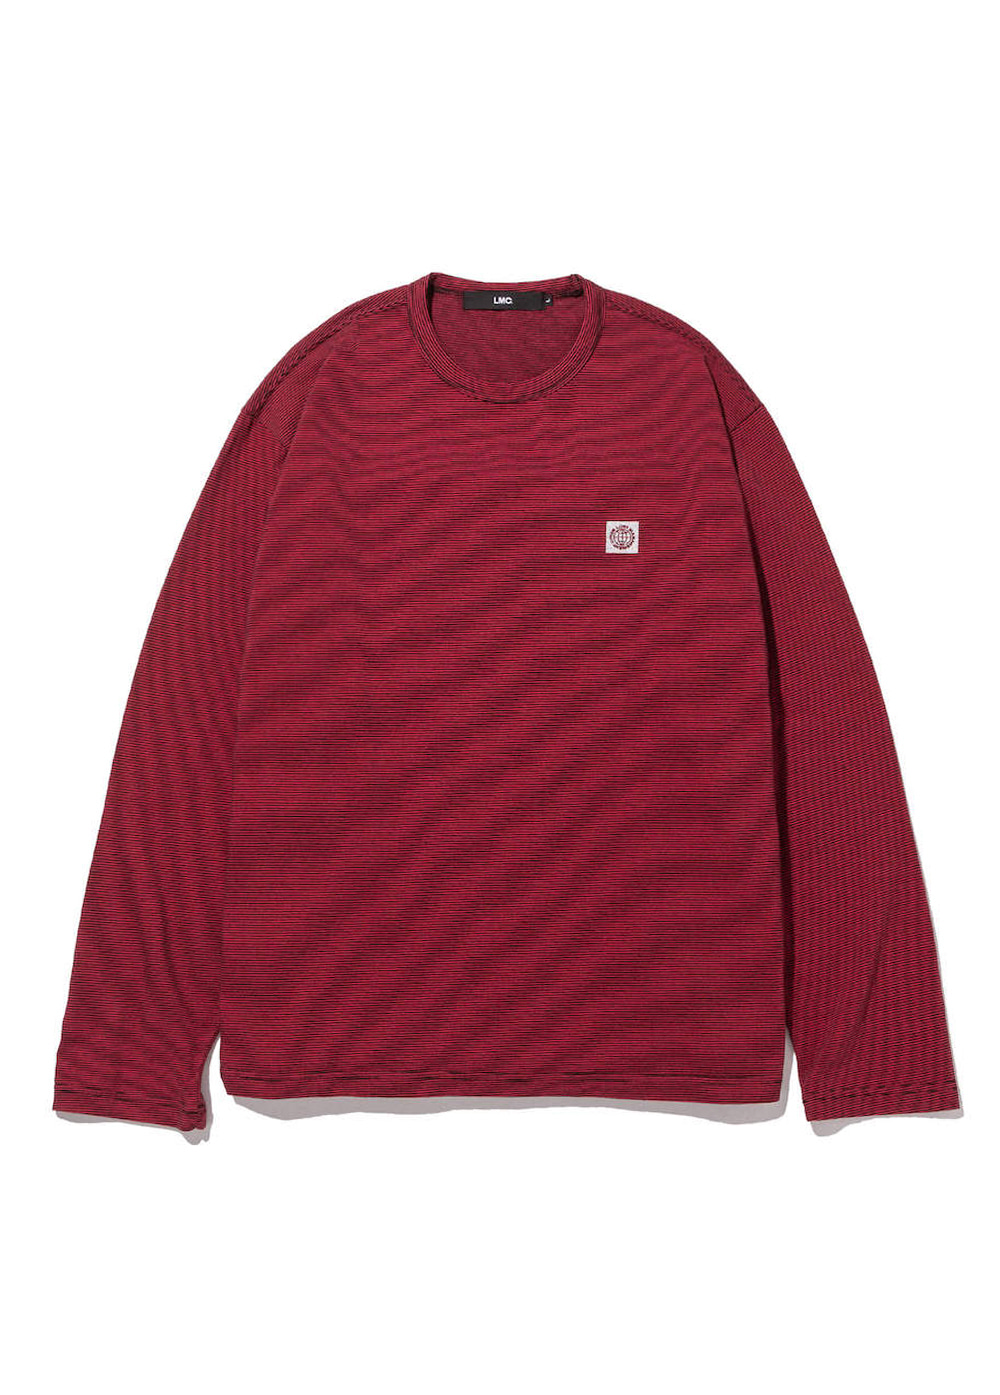 LMC REFLECTIVE WHEEL STRIPE LONG SLV TEE red